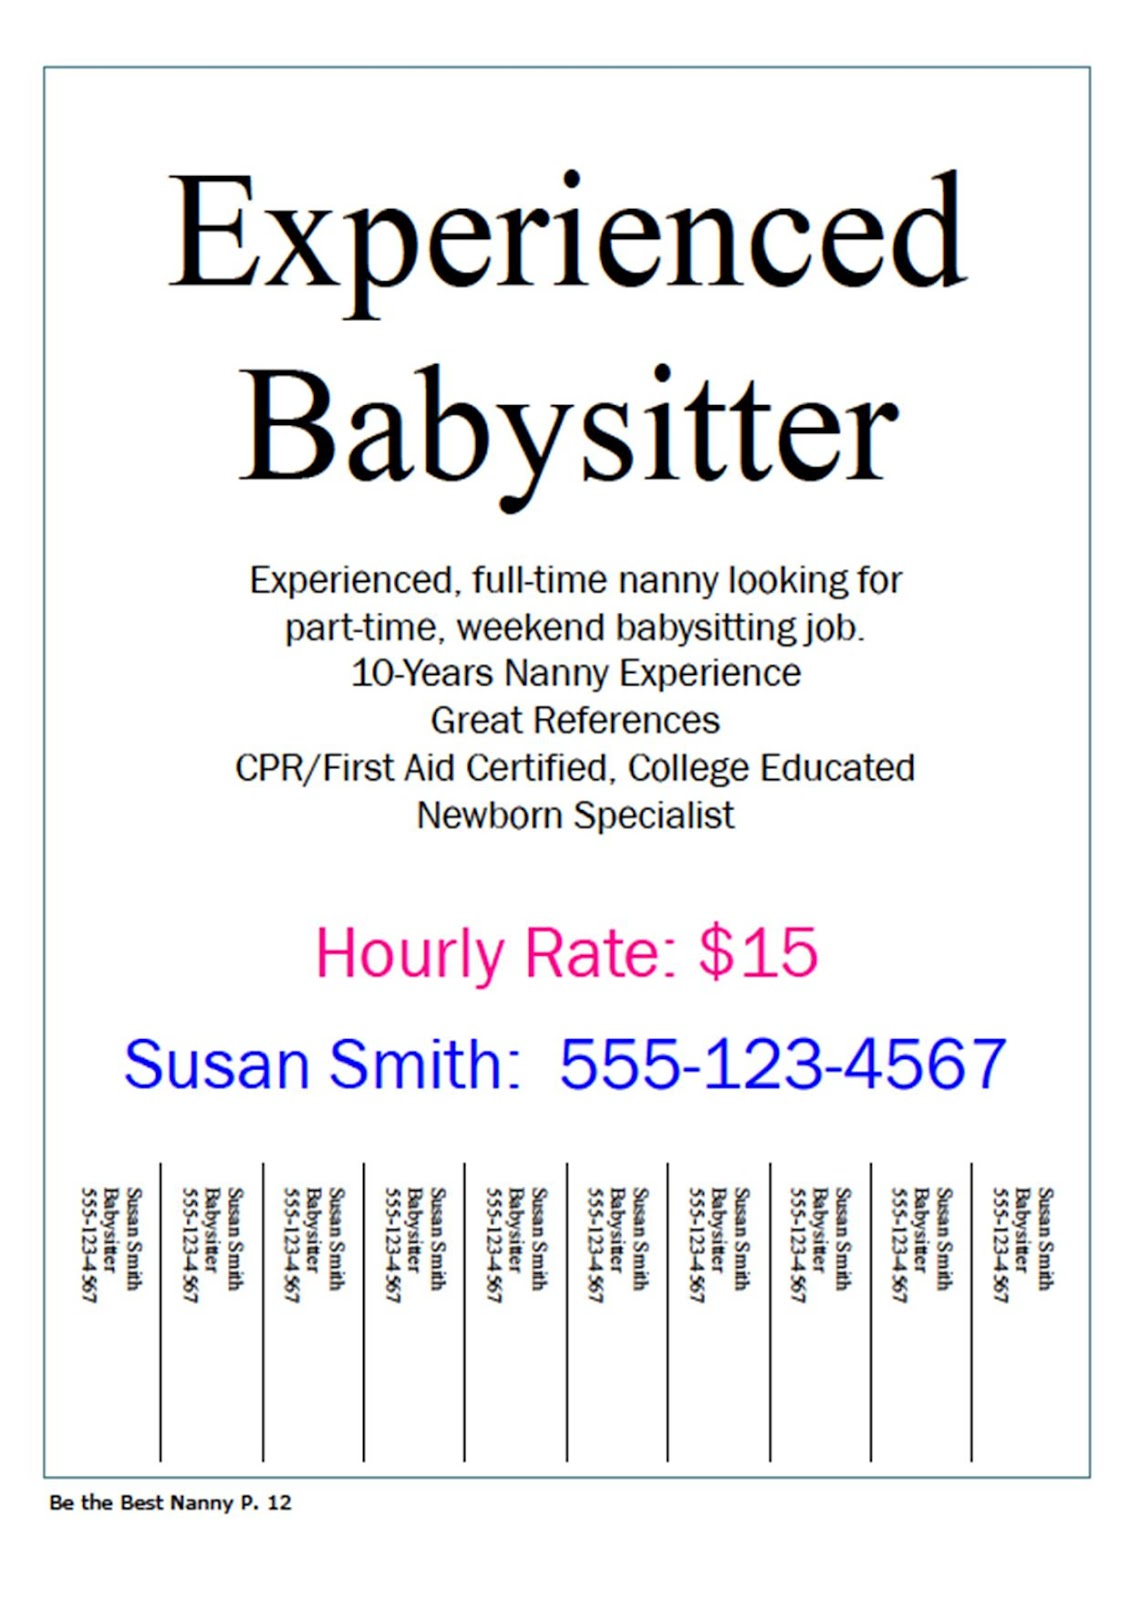 Have You Ever Hung Up Flyers To Find Babysitting Or Nanny Jobs